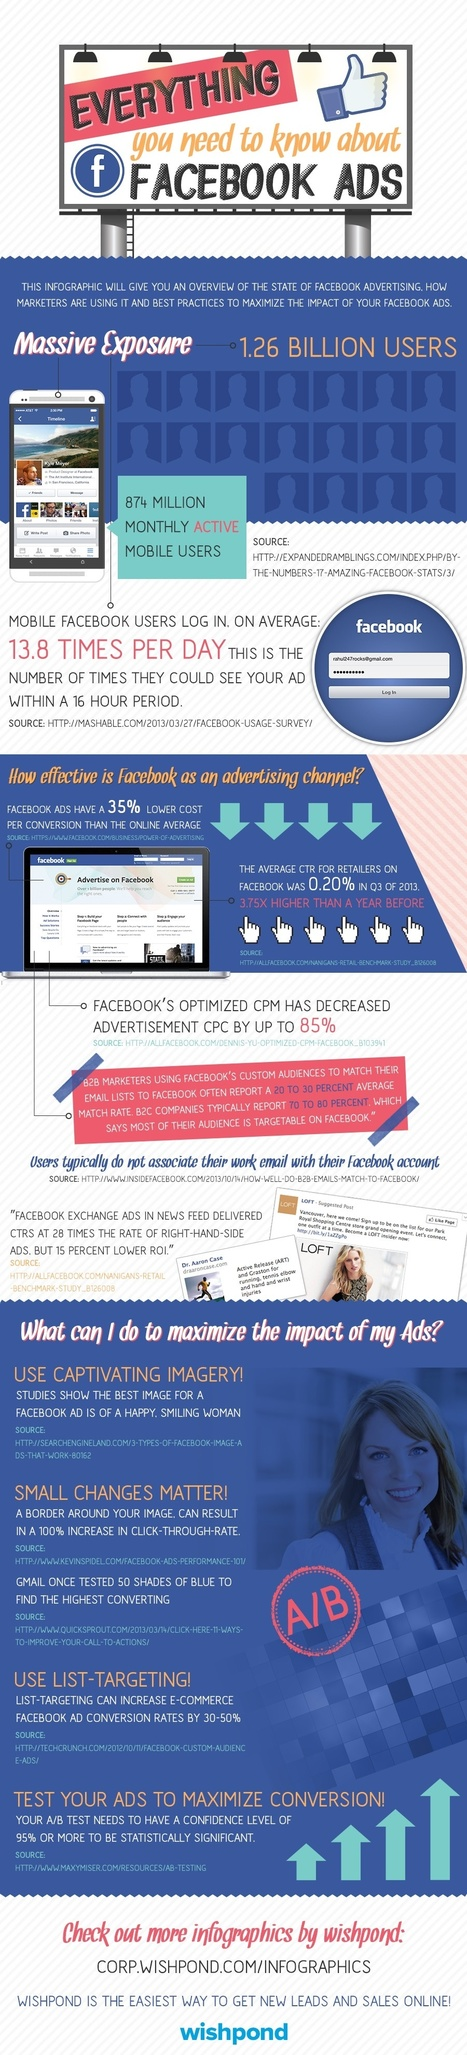 Everything You Need to Know About Facebook Ads #INFOGRAPHIC | MarketingHits | Scoop.it